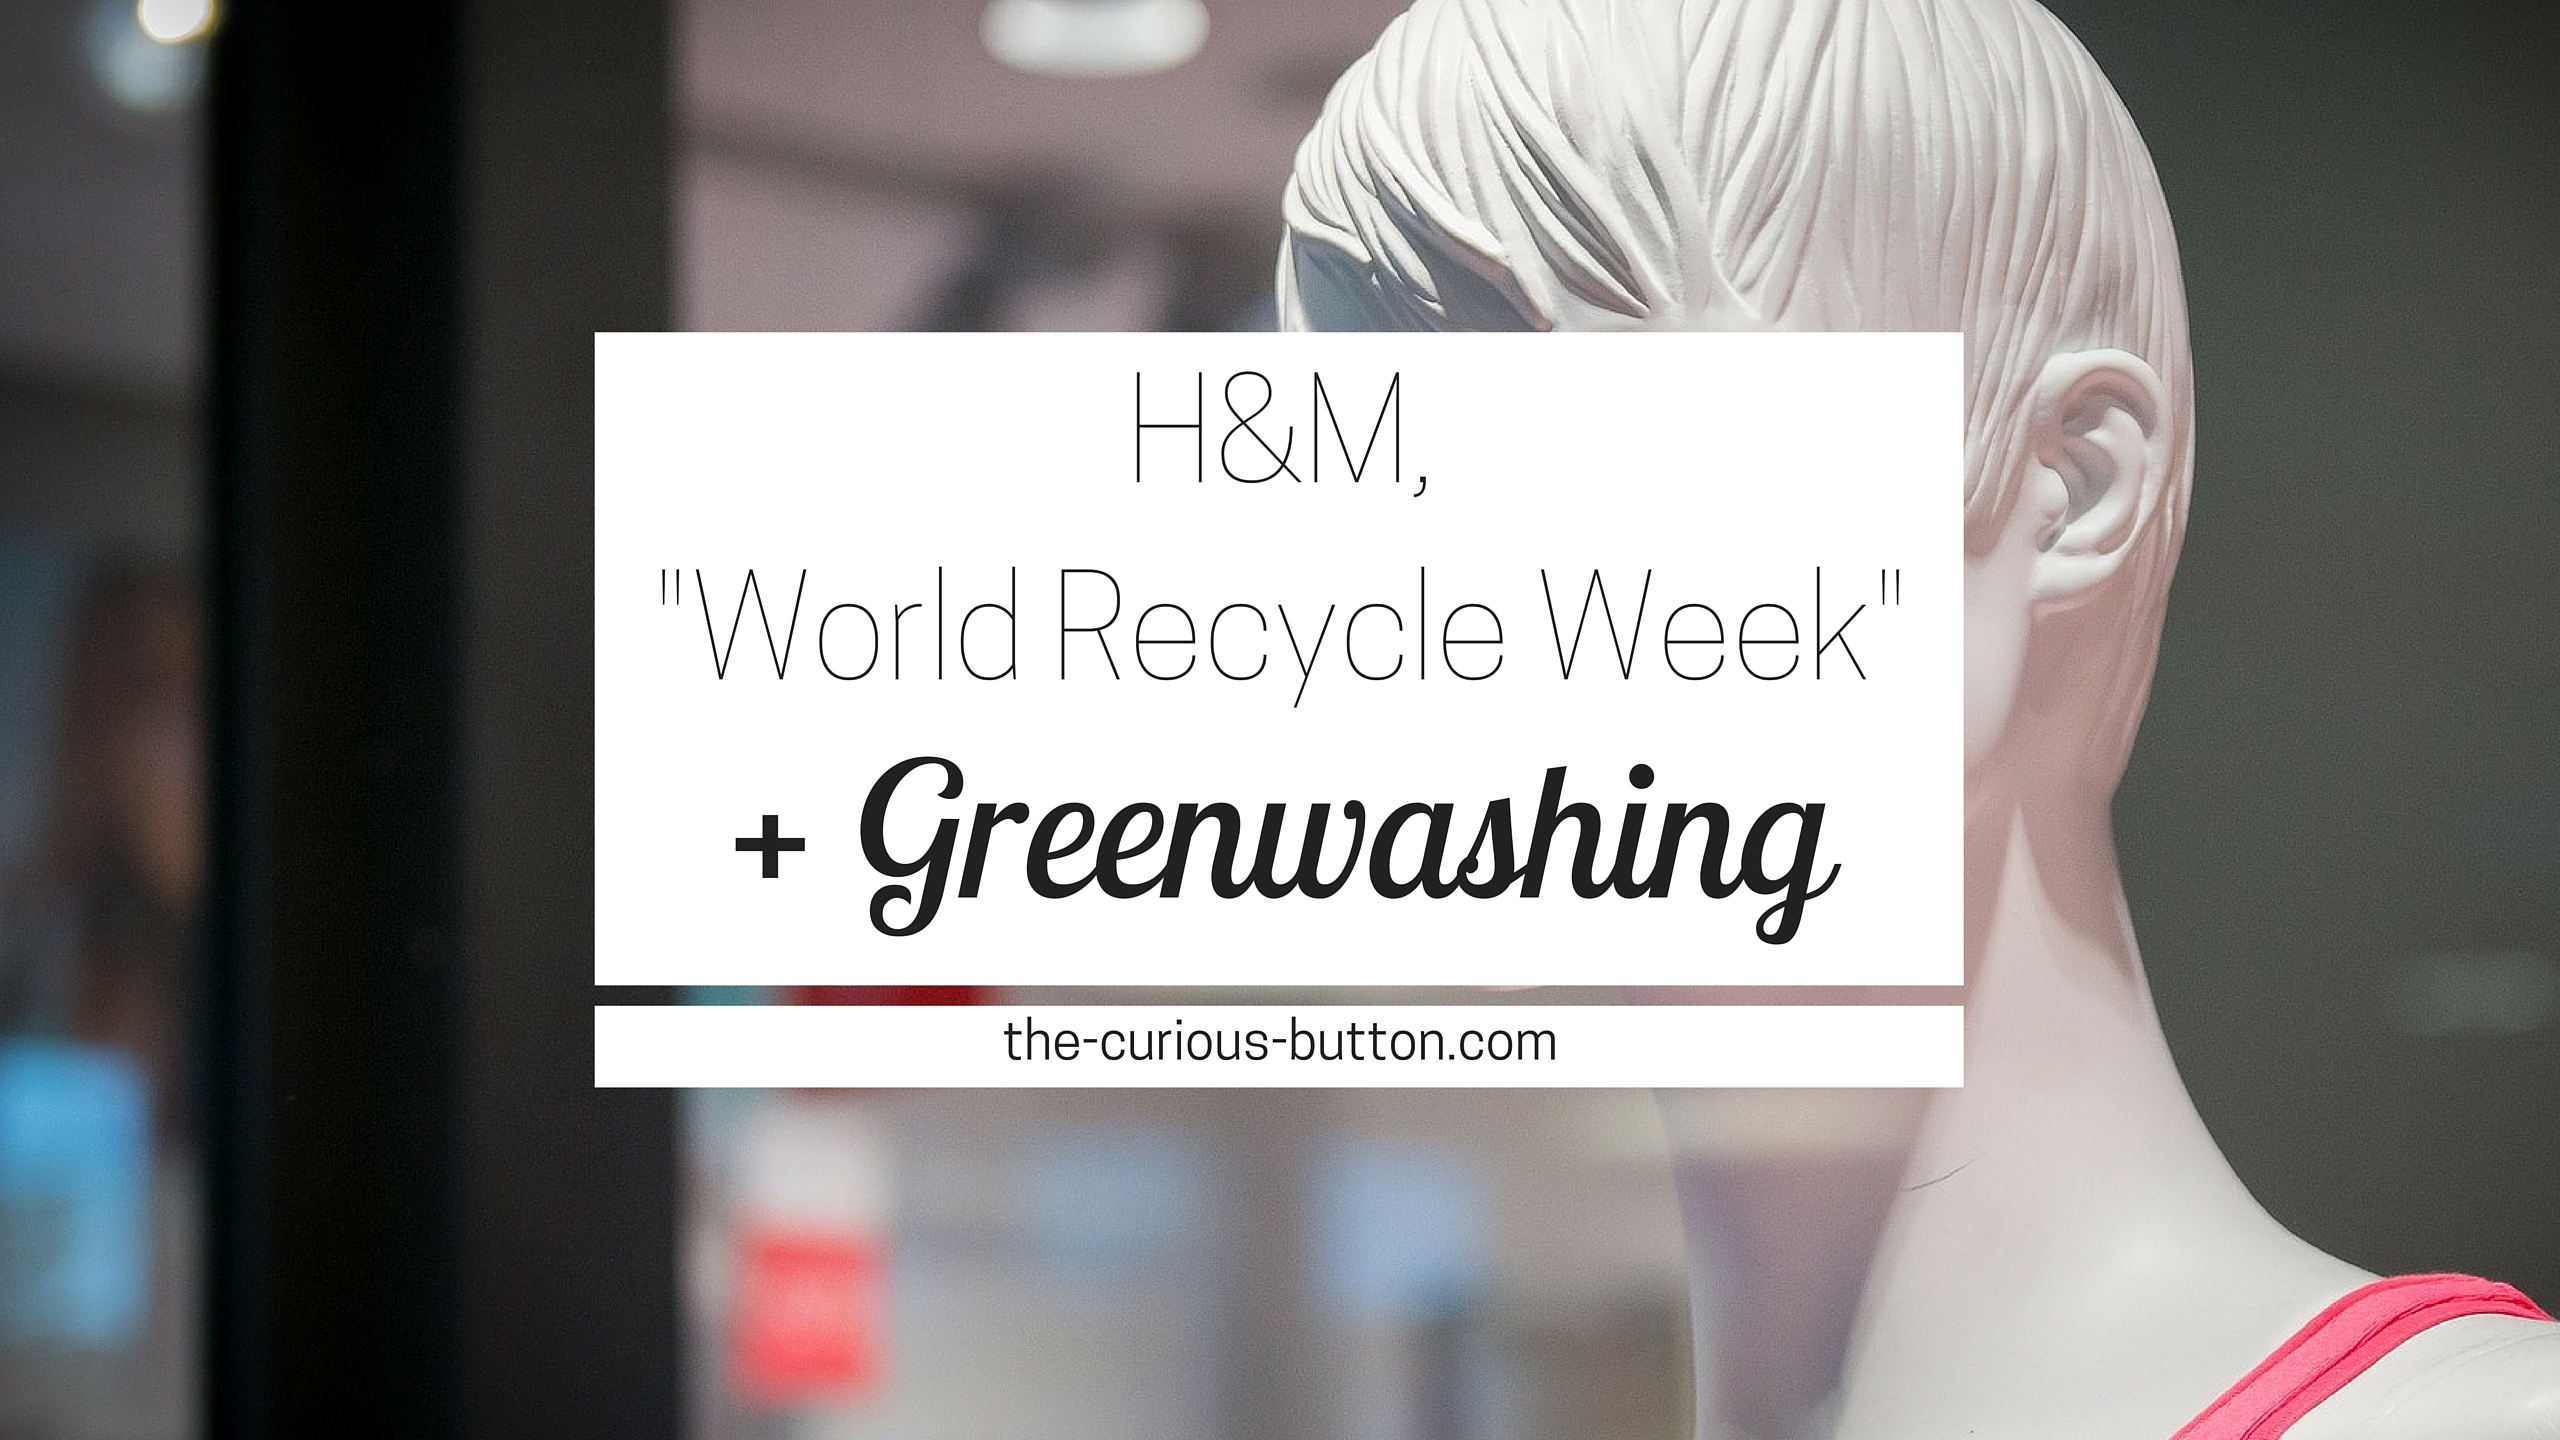 H&M, World Recycle Week, + Greenwashing | The Curious Button